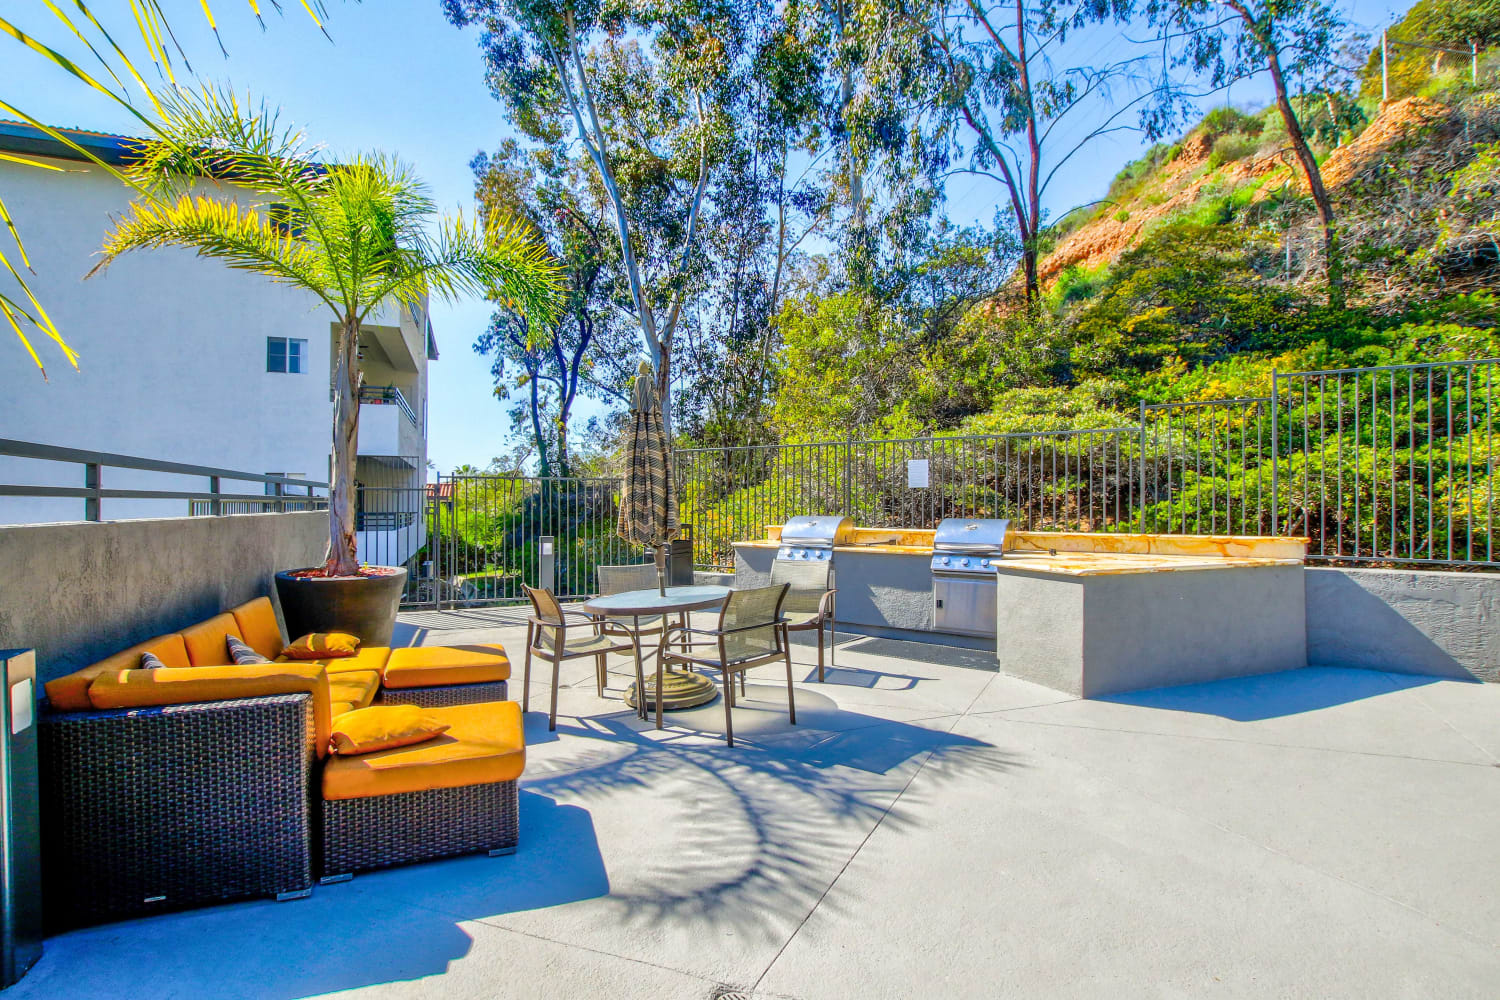 Enjoy a picnic and barbecue area at Fashion Terrace in San Diego, California